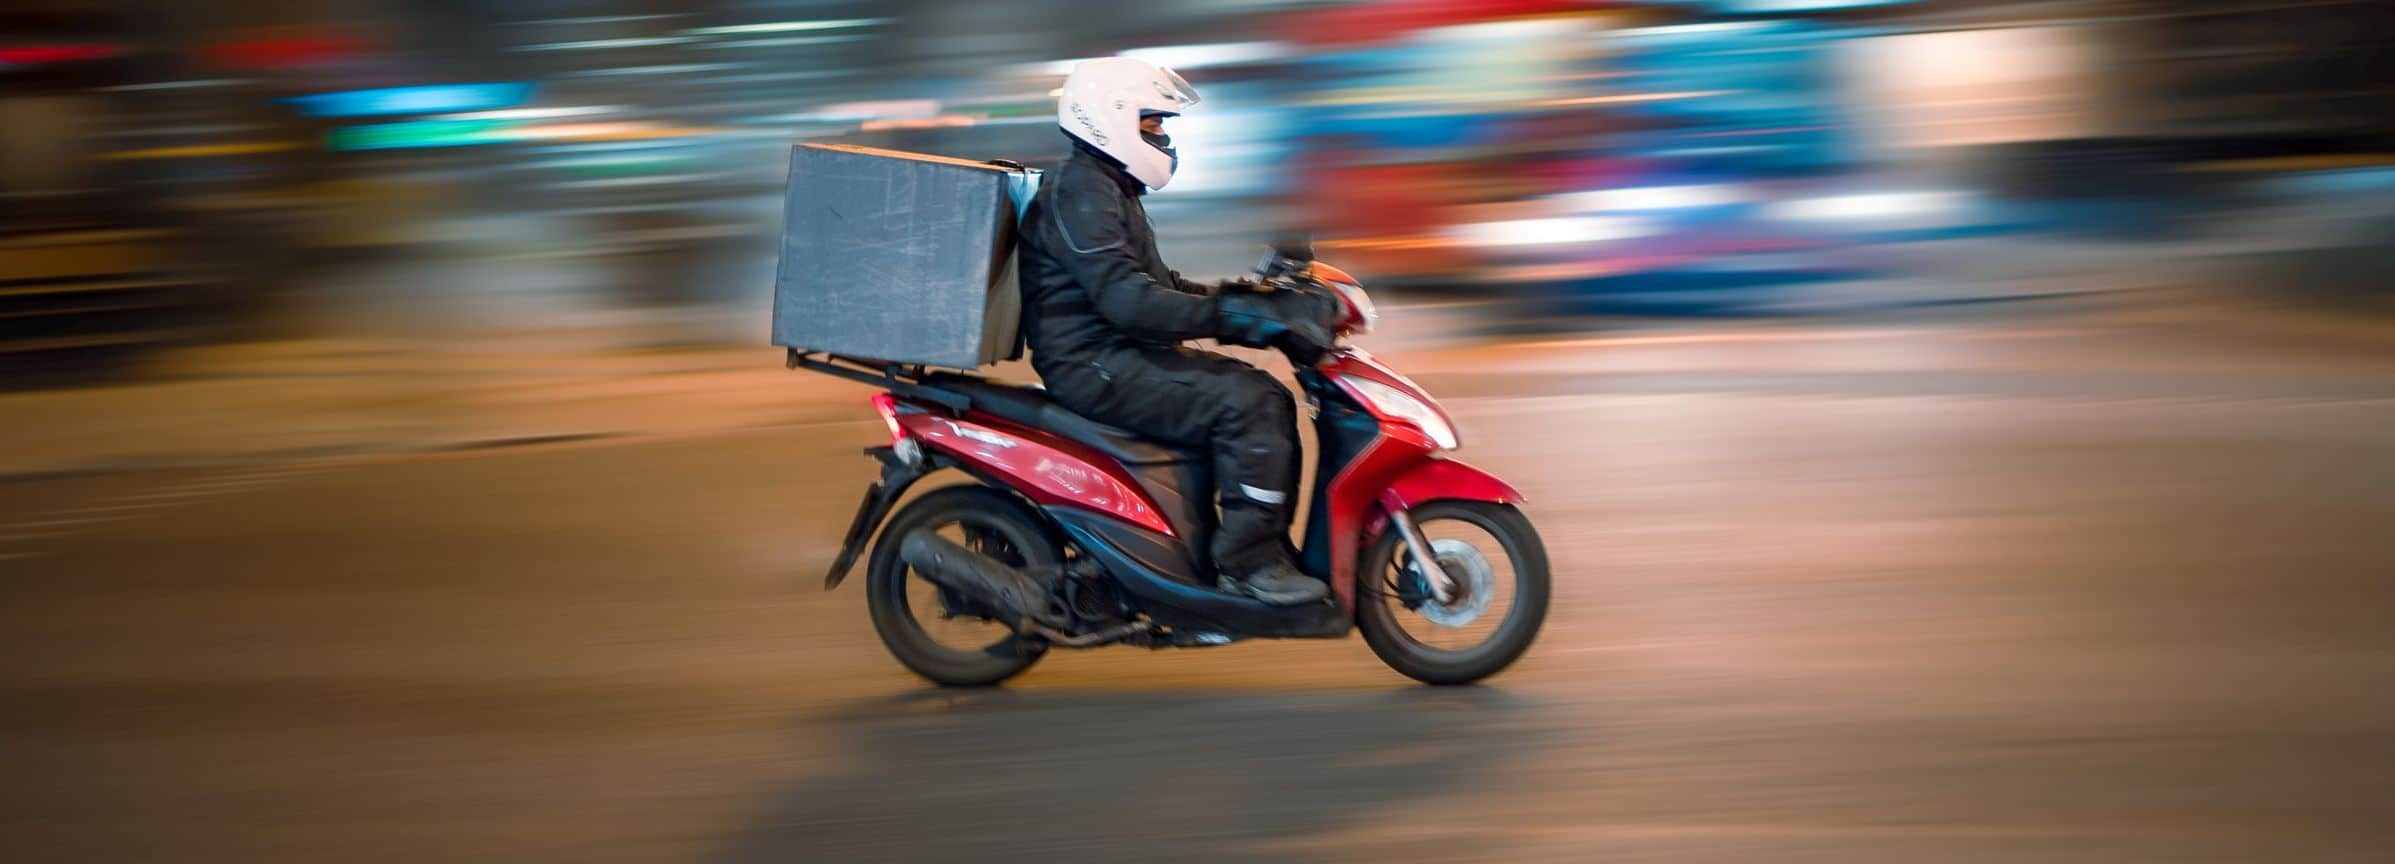 delivery rider insurance